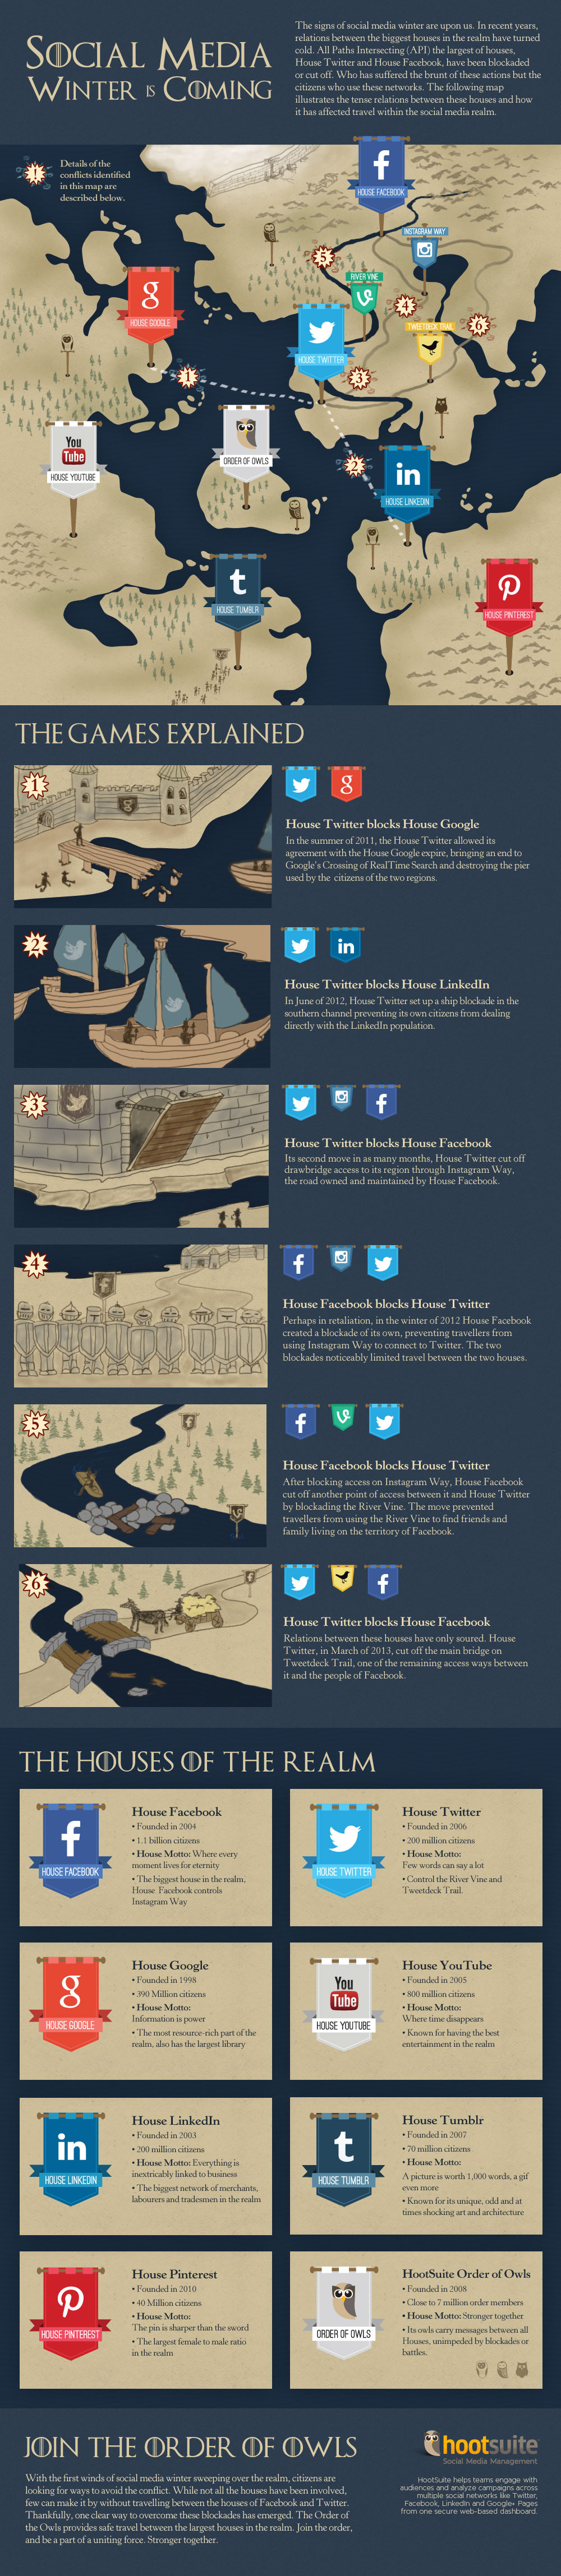 Social Media Winter is Coming - An Infographic